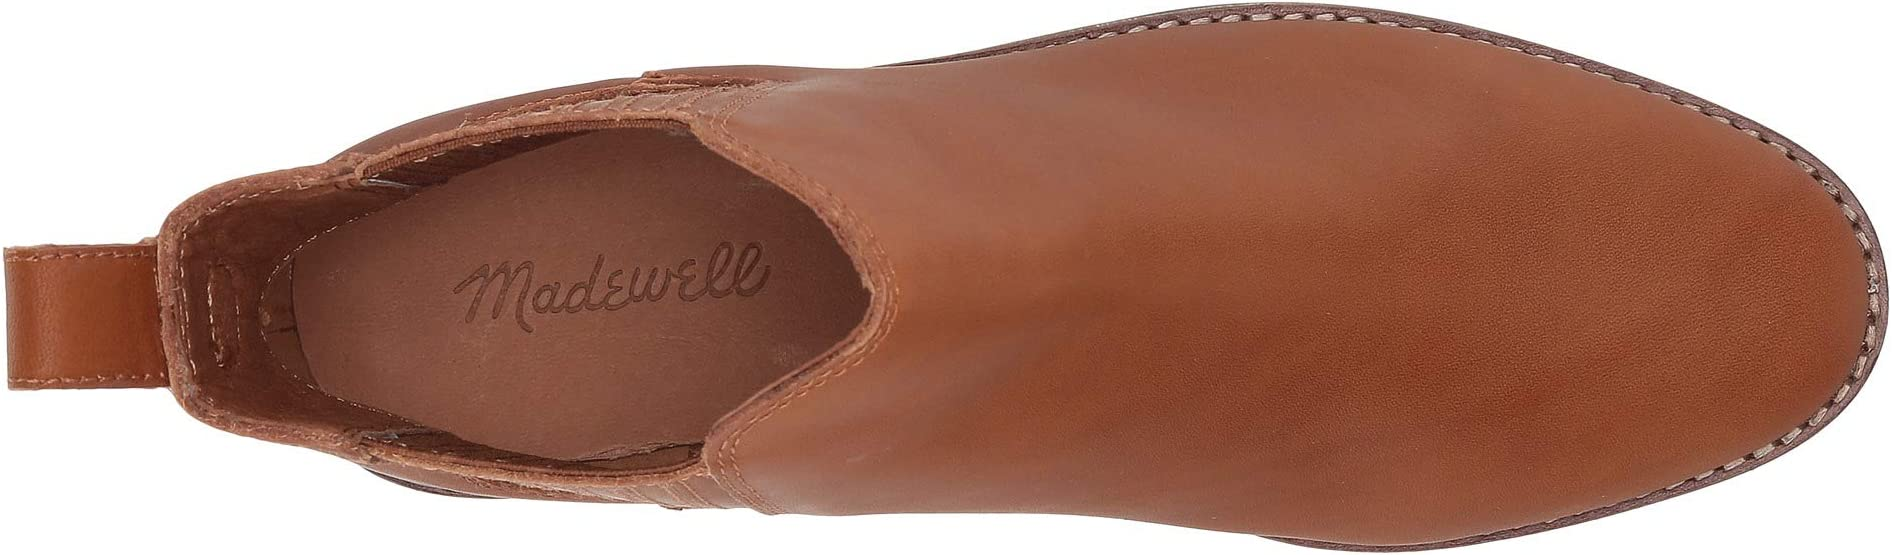 Madewell Ainsley Chelsea Boot | Women's shoes | 2020 Newest